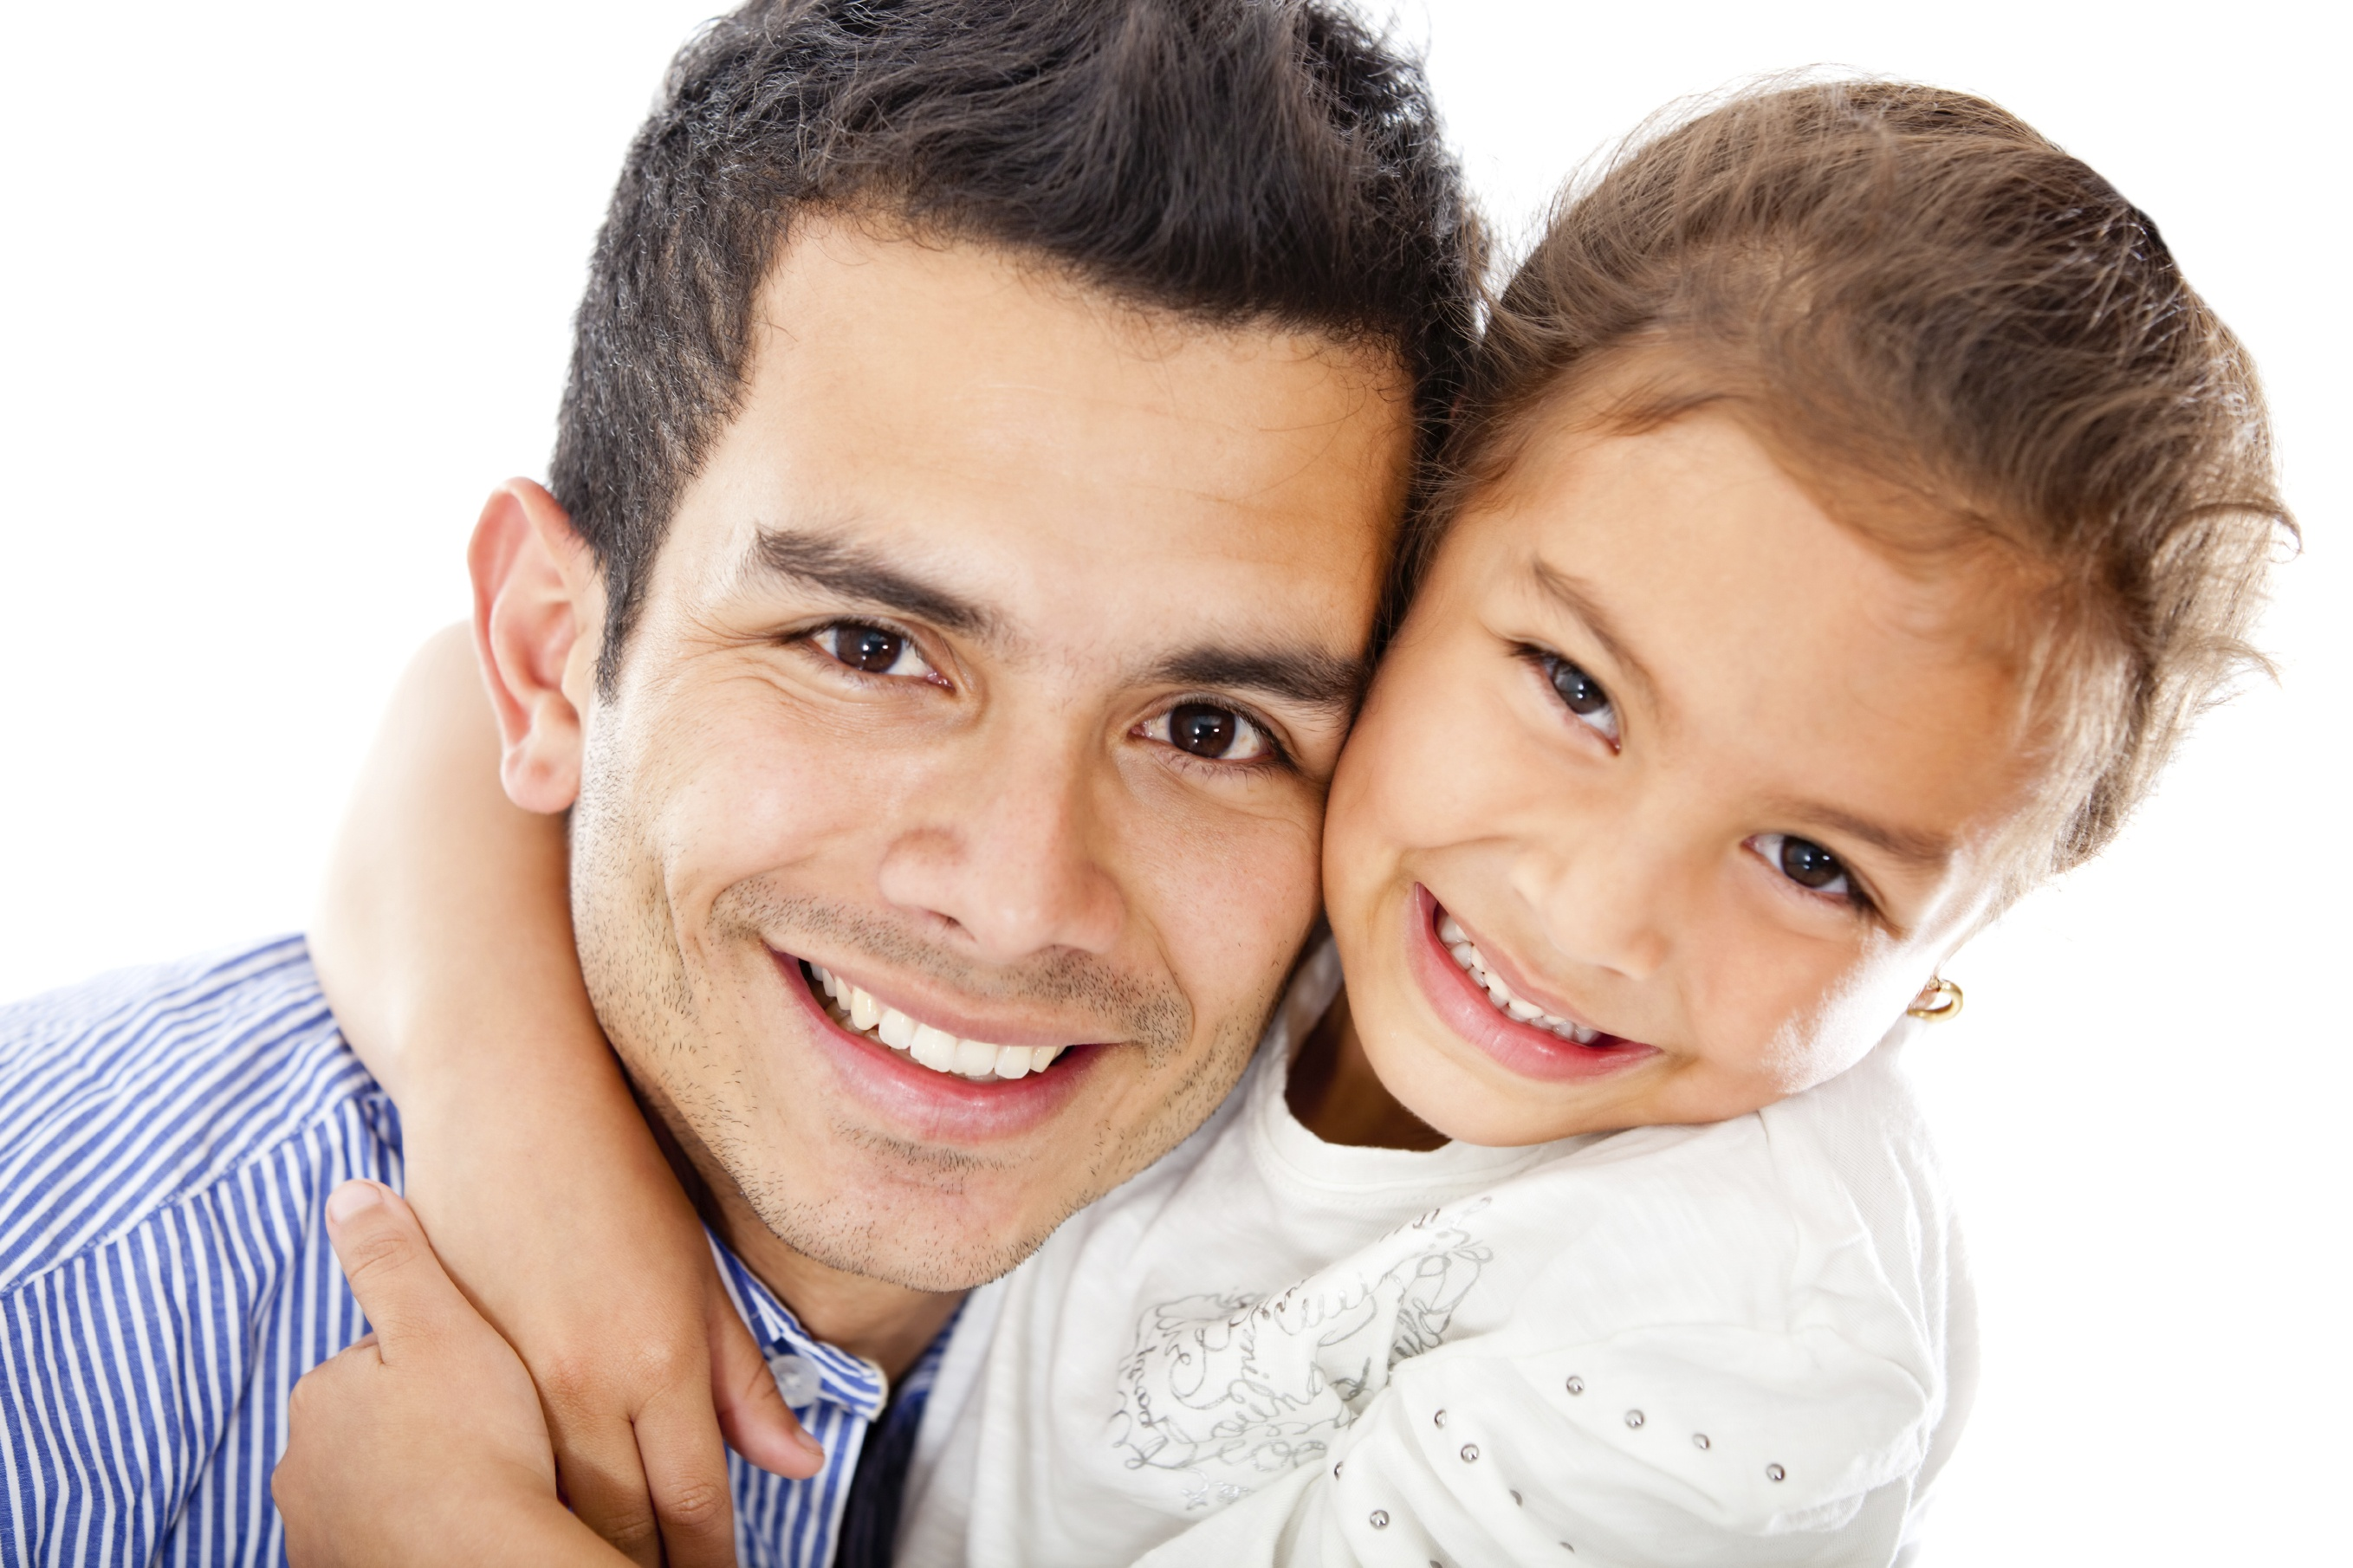 el pino single parent dating site Cnbnewsnet/gloucester city  dating to the final days of walt harris and dave  if you are a parent and want an insight into the potential worries of.